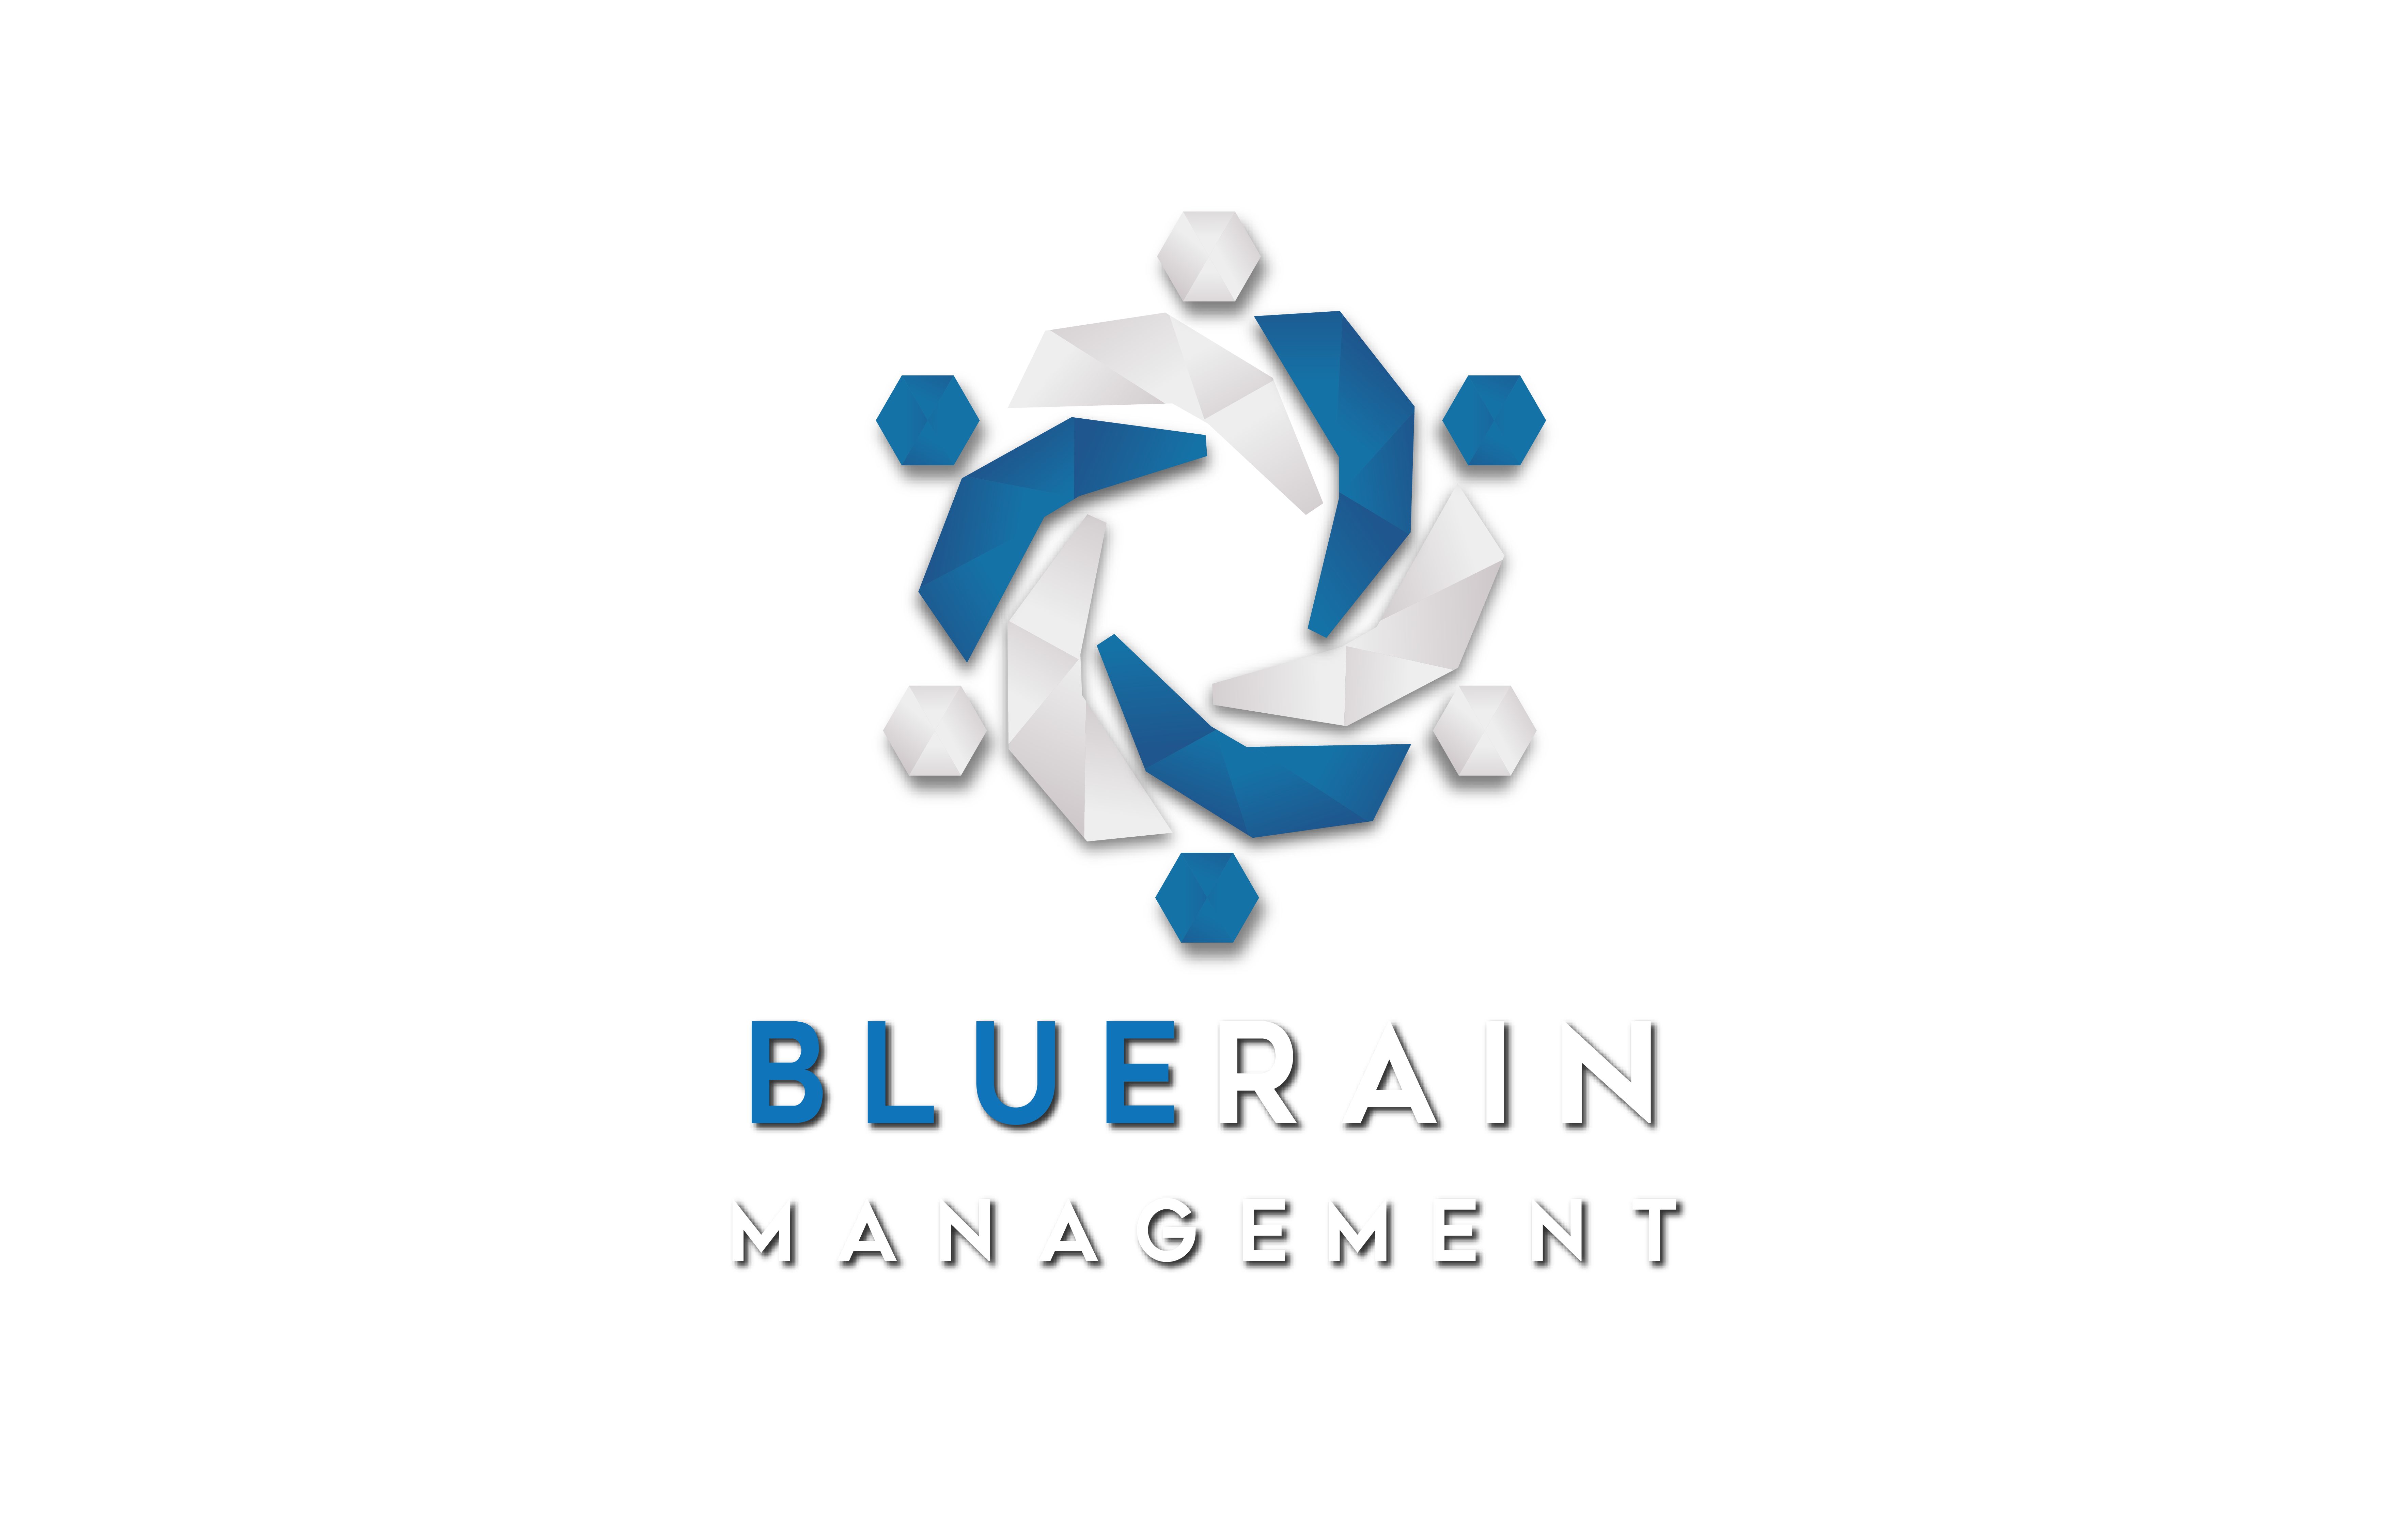 Blue Rain Management Offering Innovative Investment Opportunity